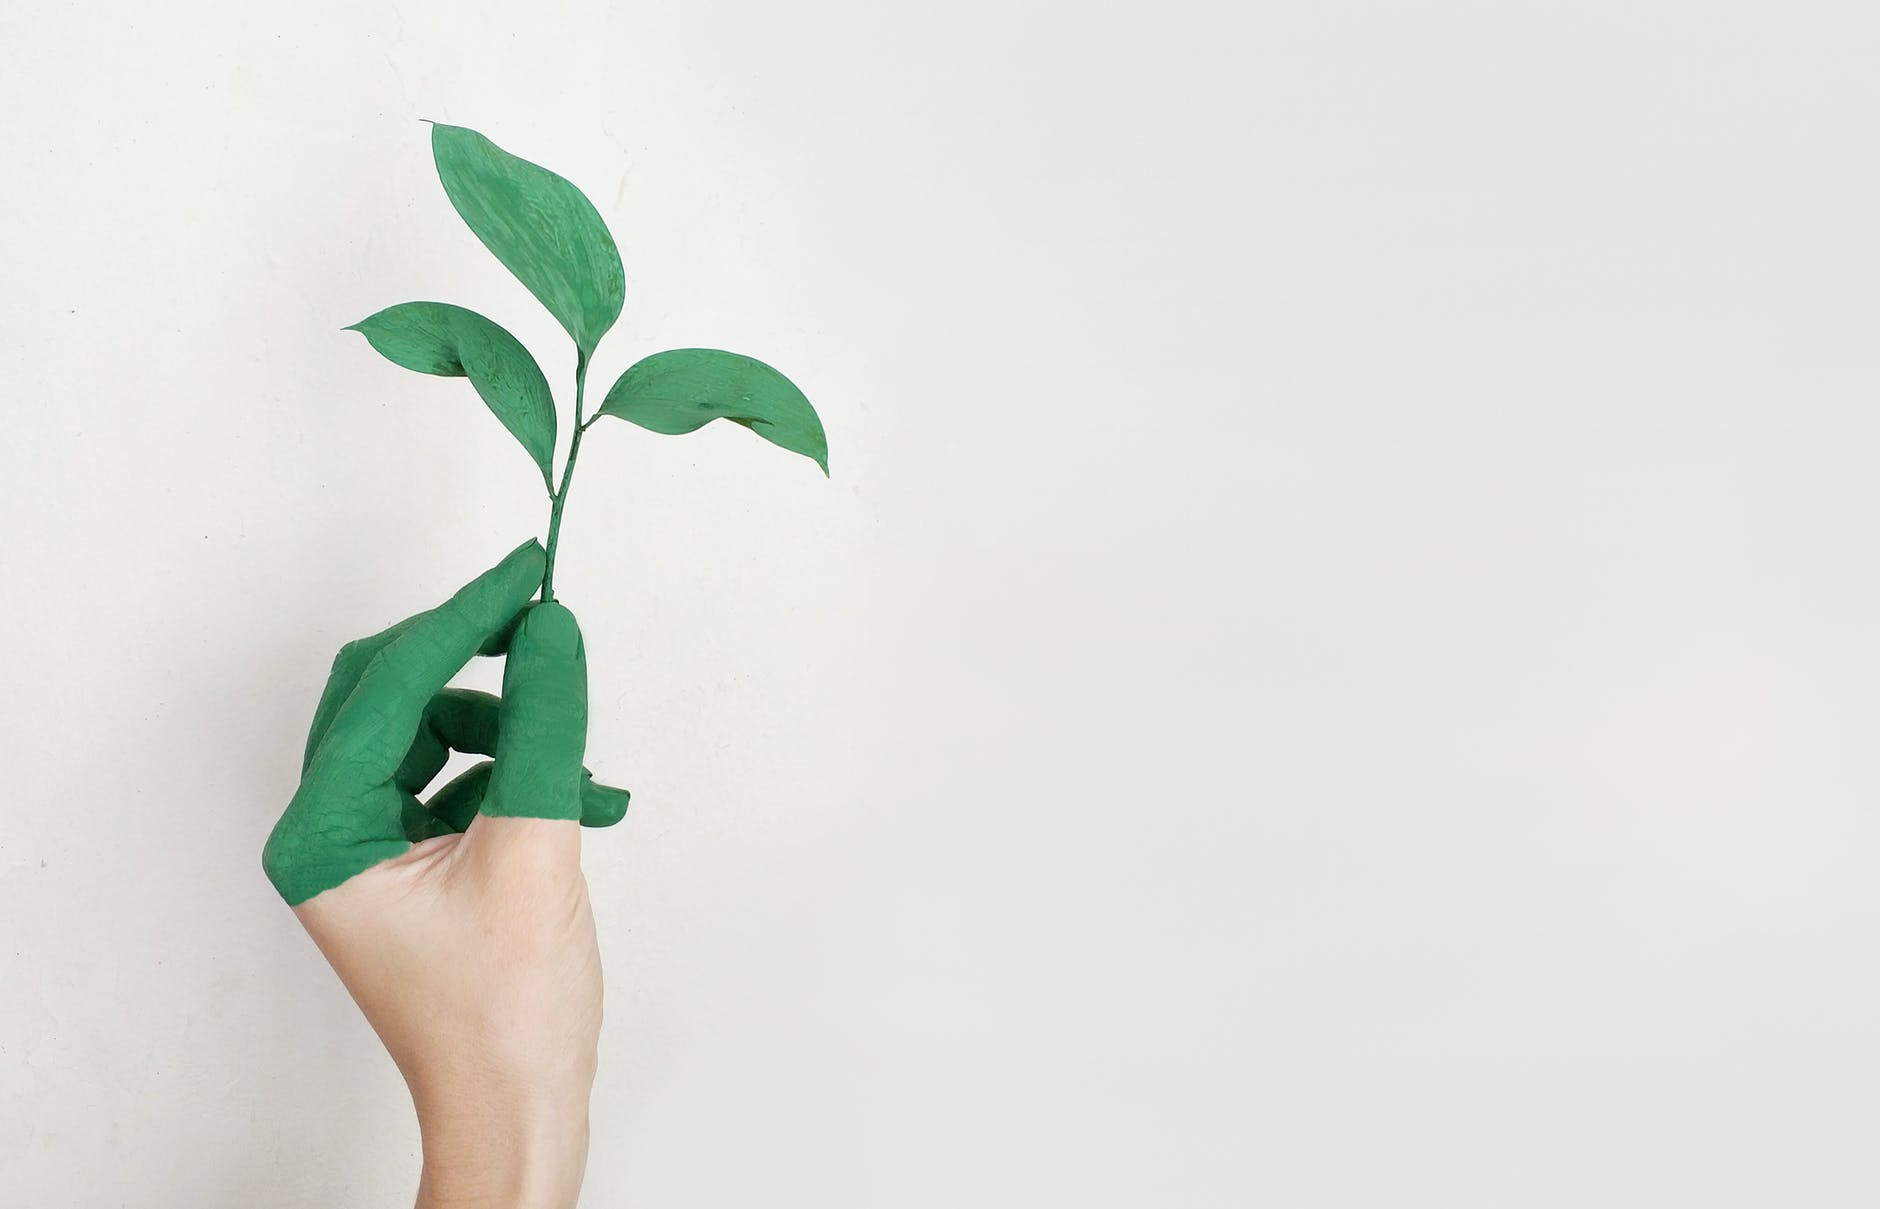 How plants make cellulose for strength and growth?